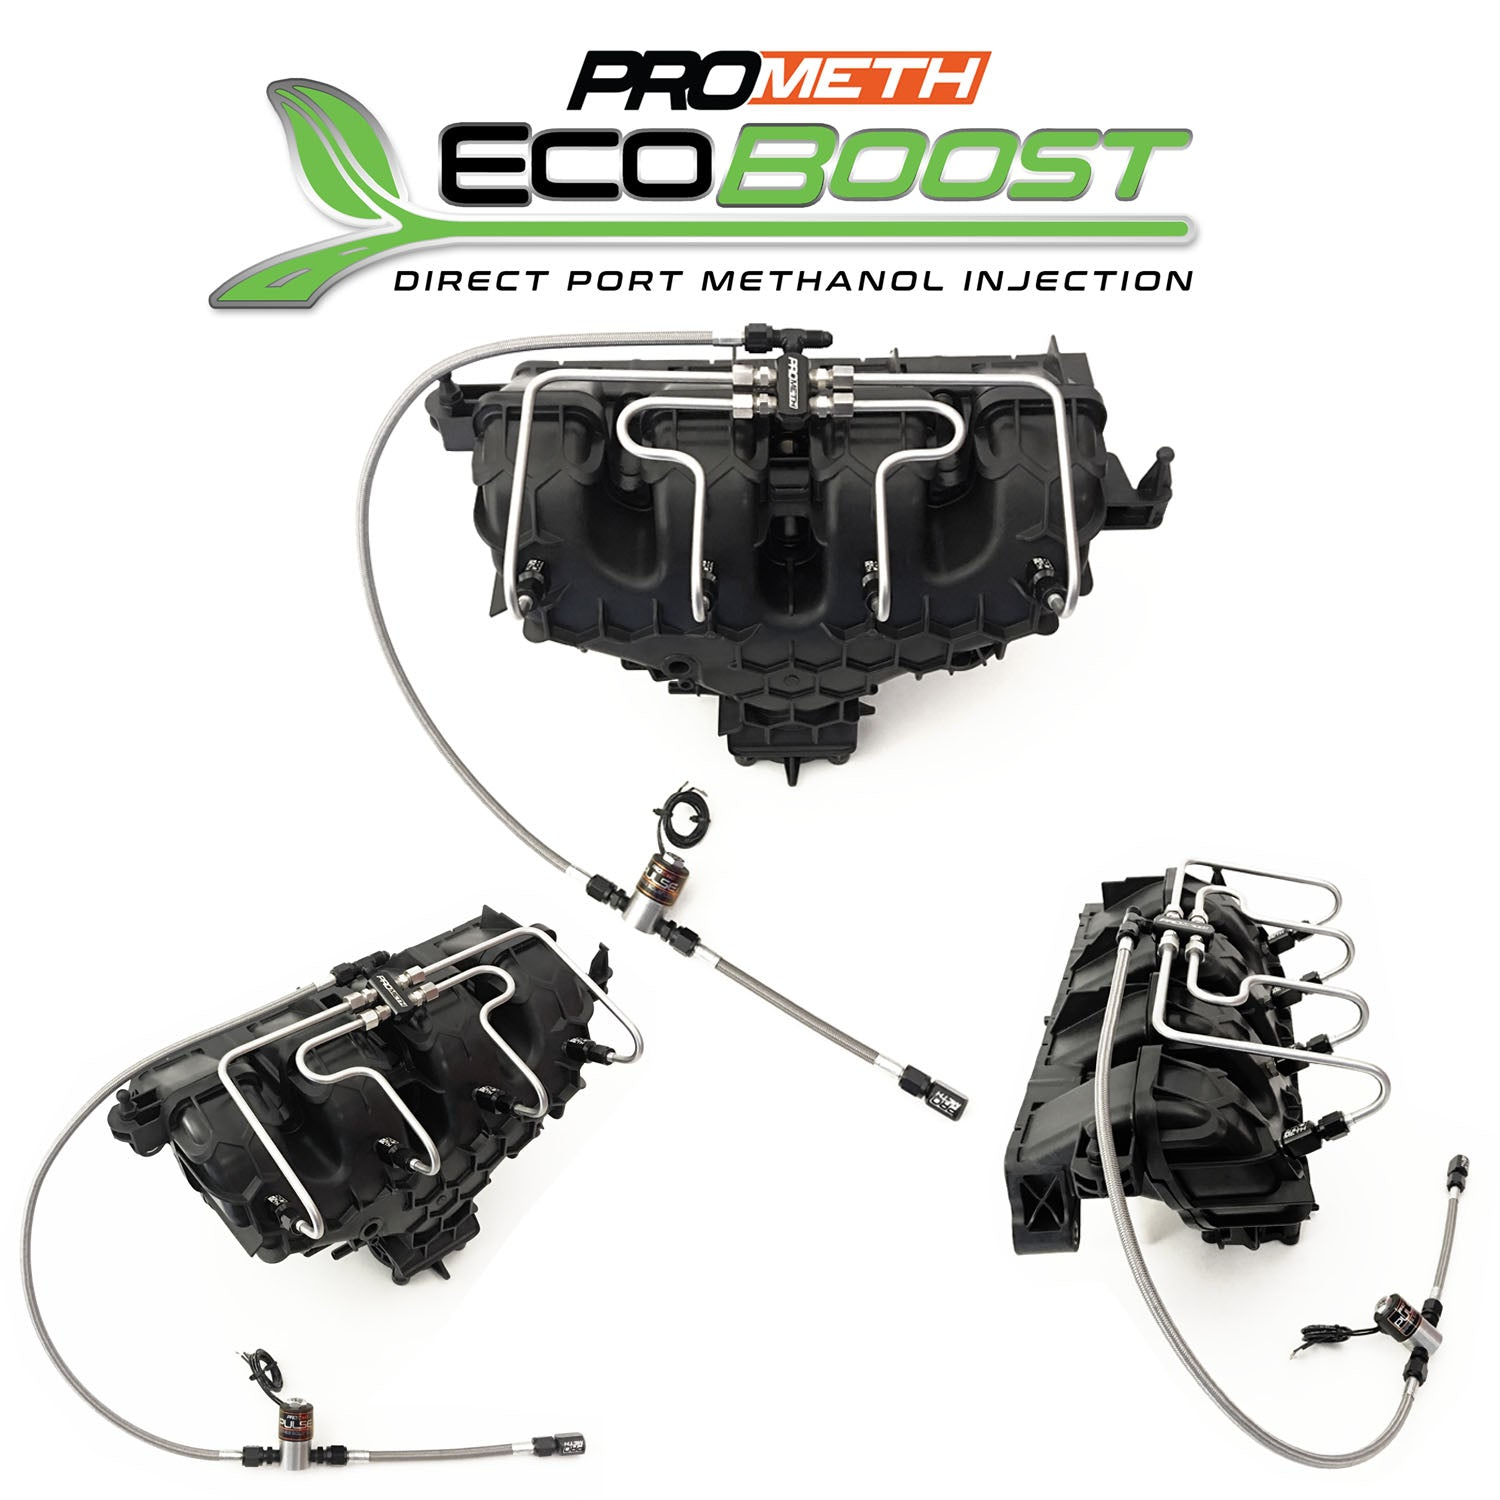 Ford SVT Focus 2.0L Ecoboost Direct Port Methanol Injection With 2nd Stage